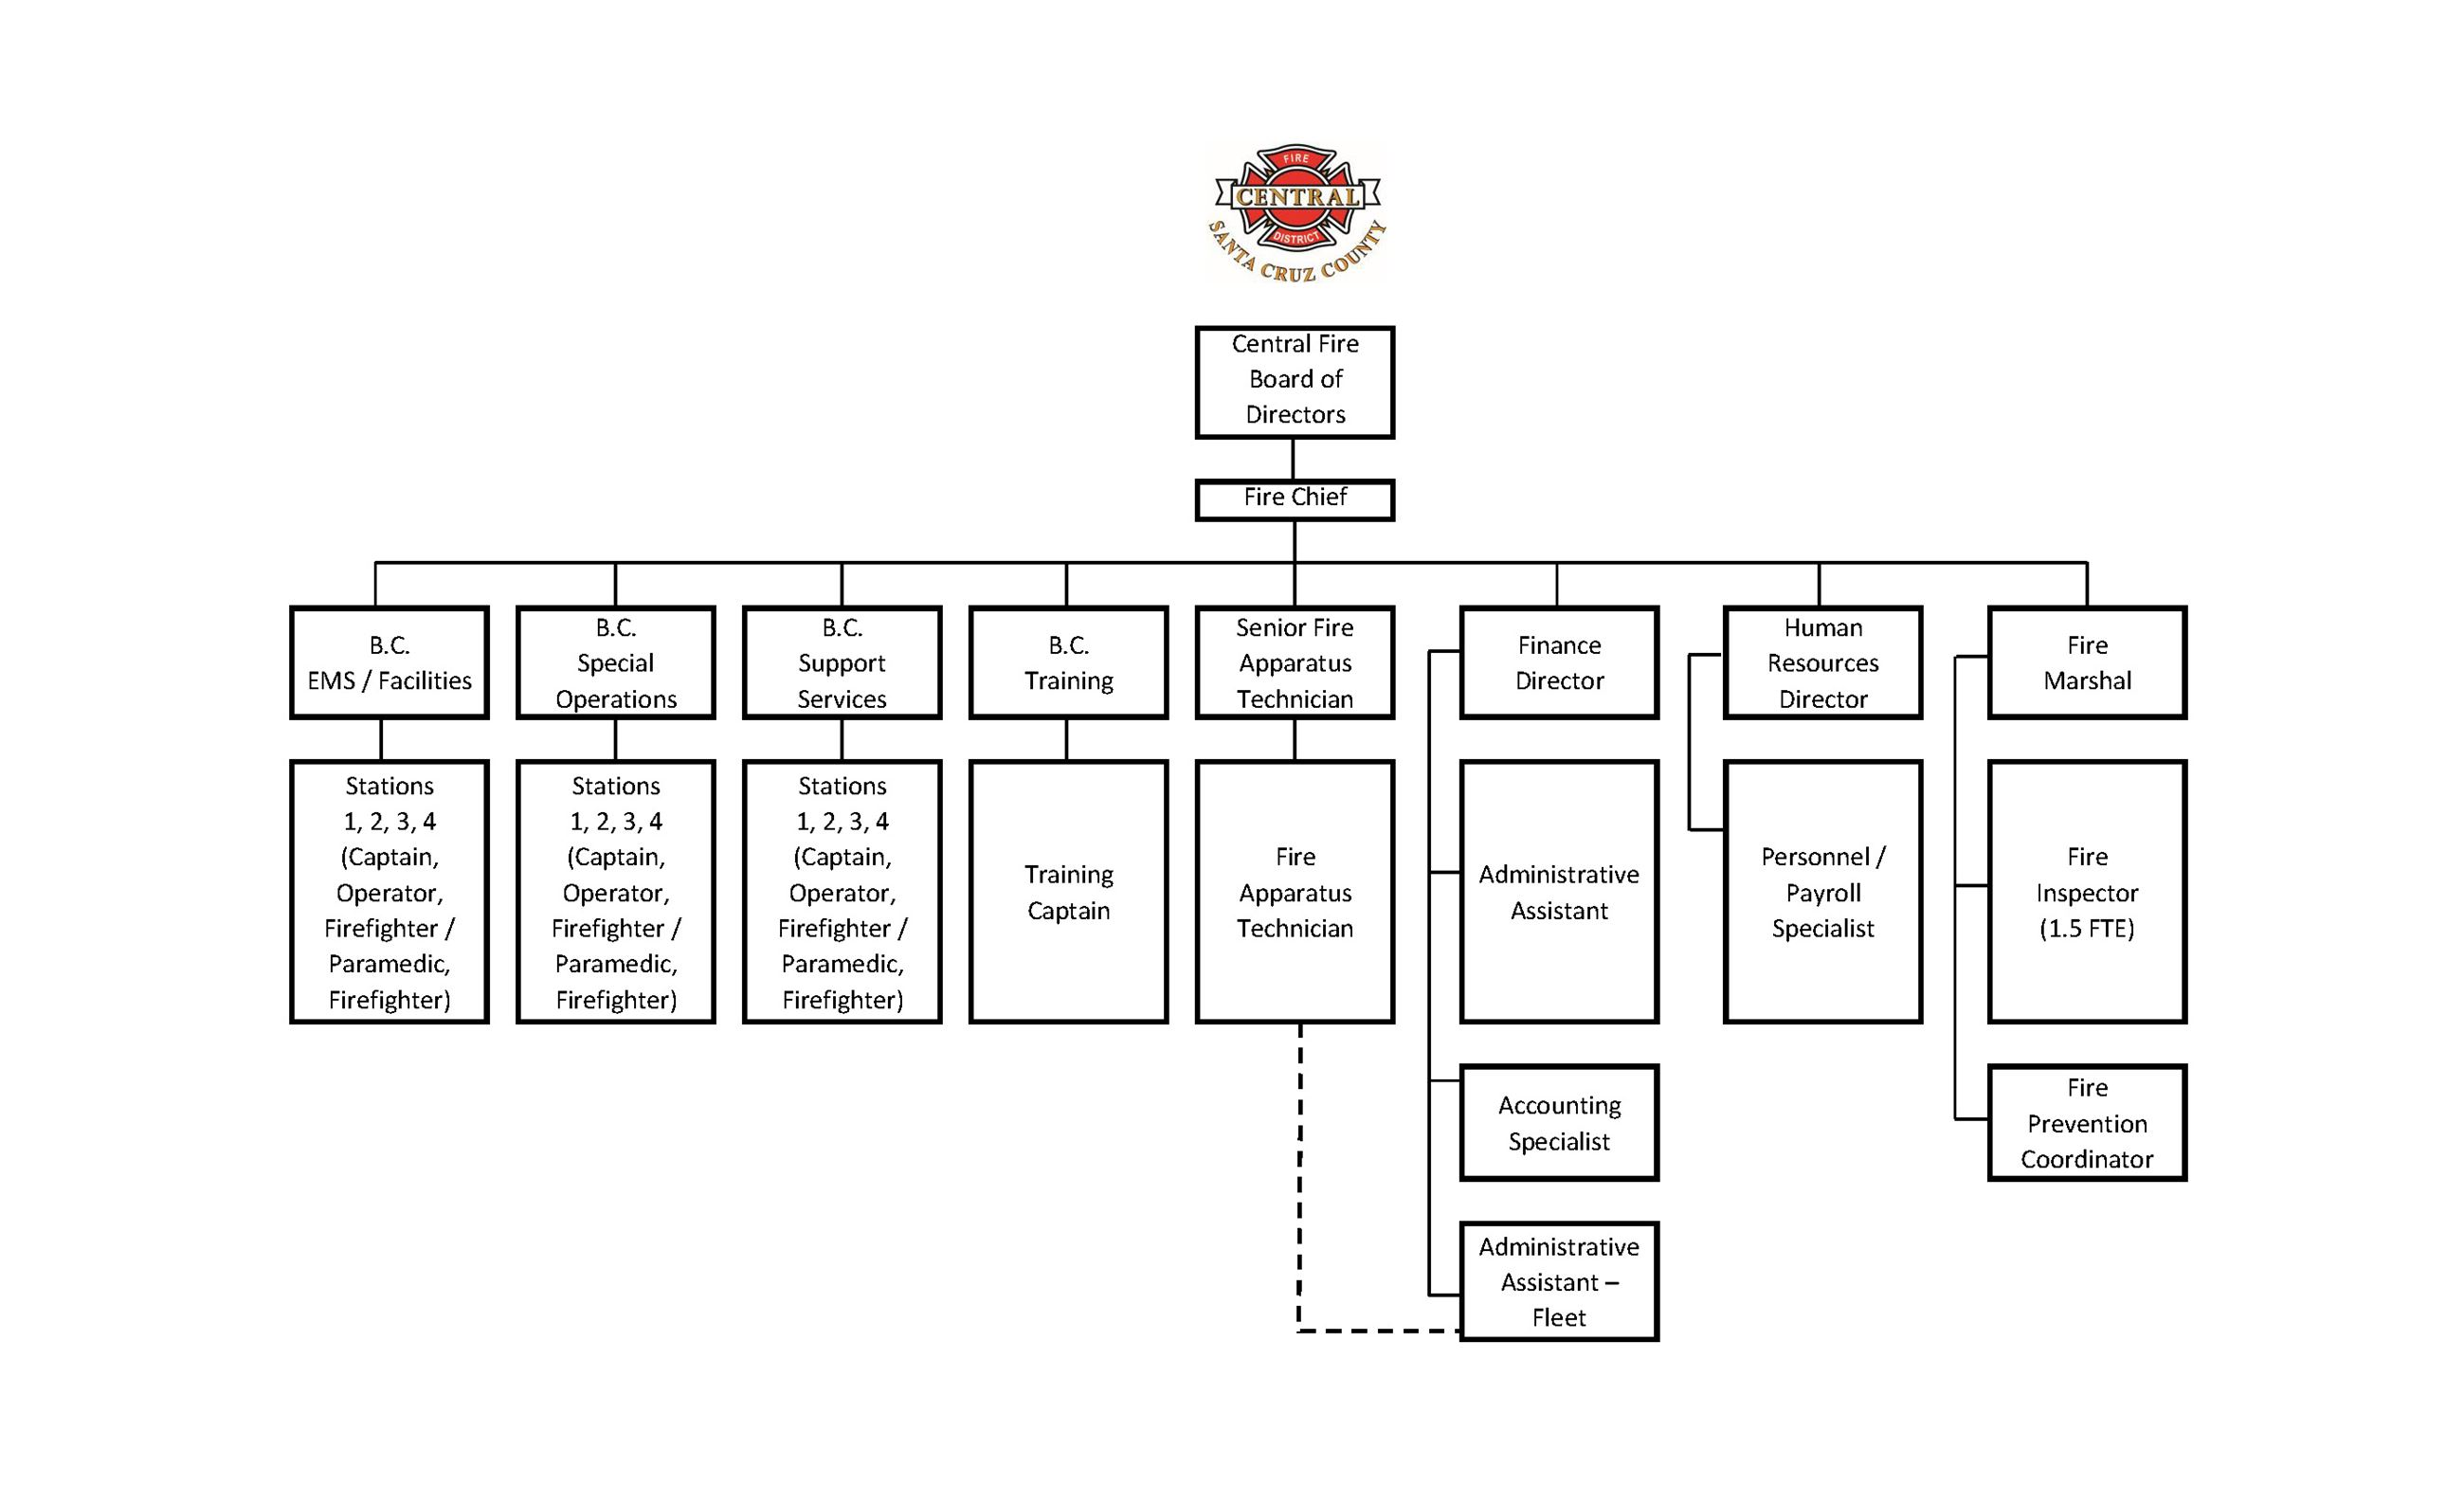 Organizational Chart - revised 10-25-18